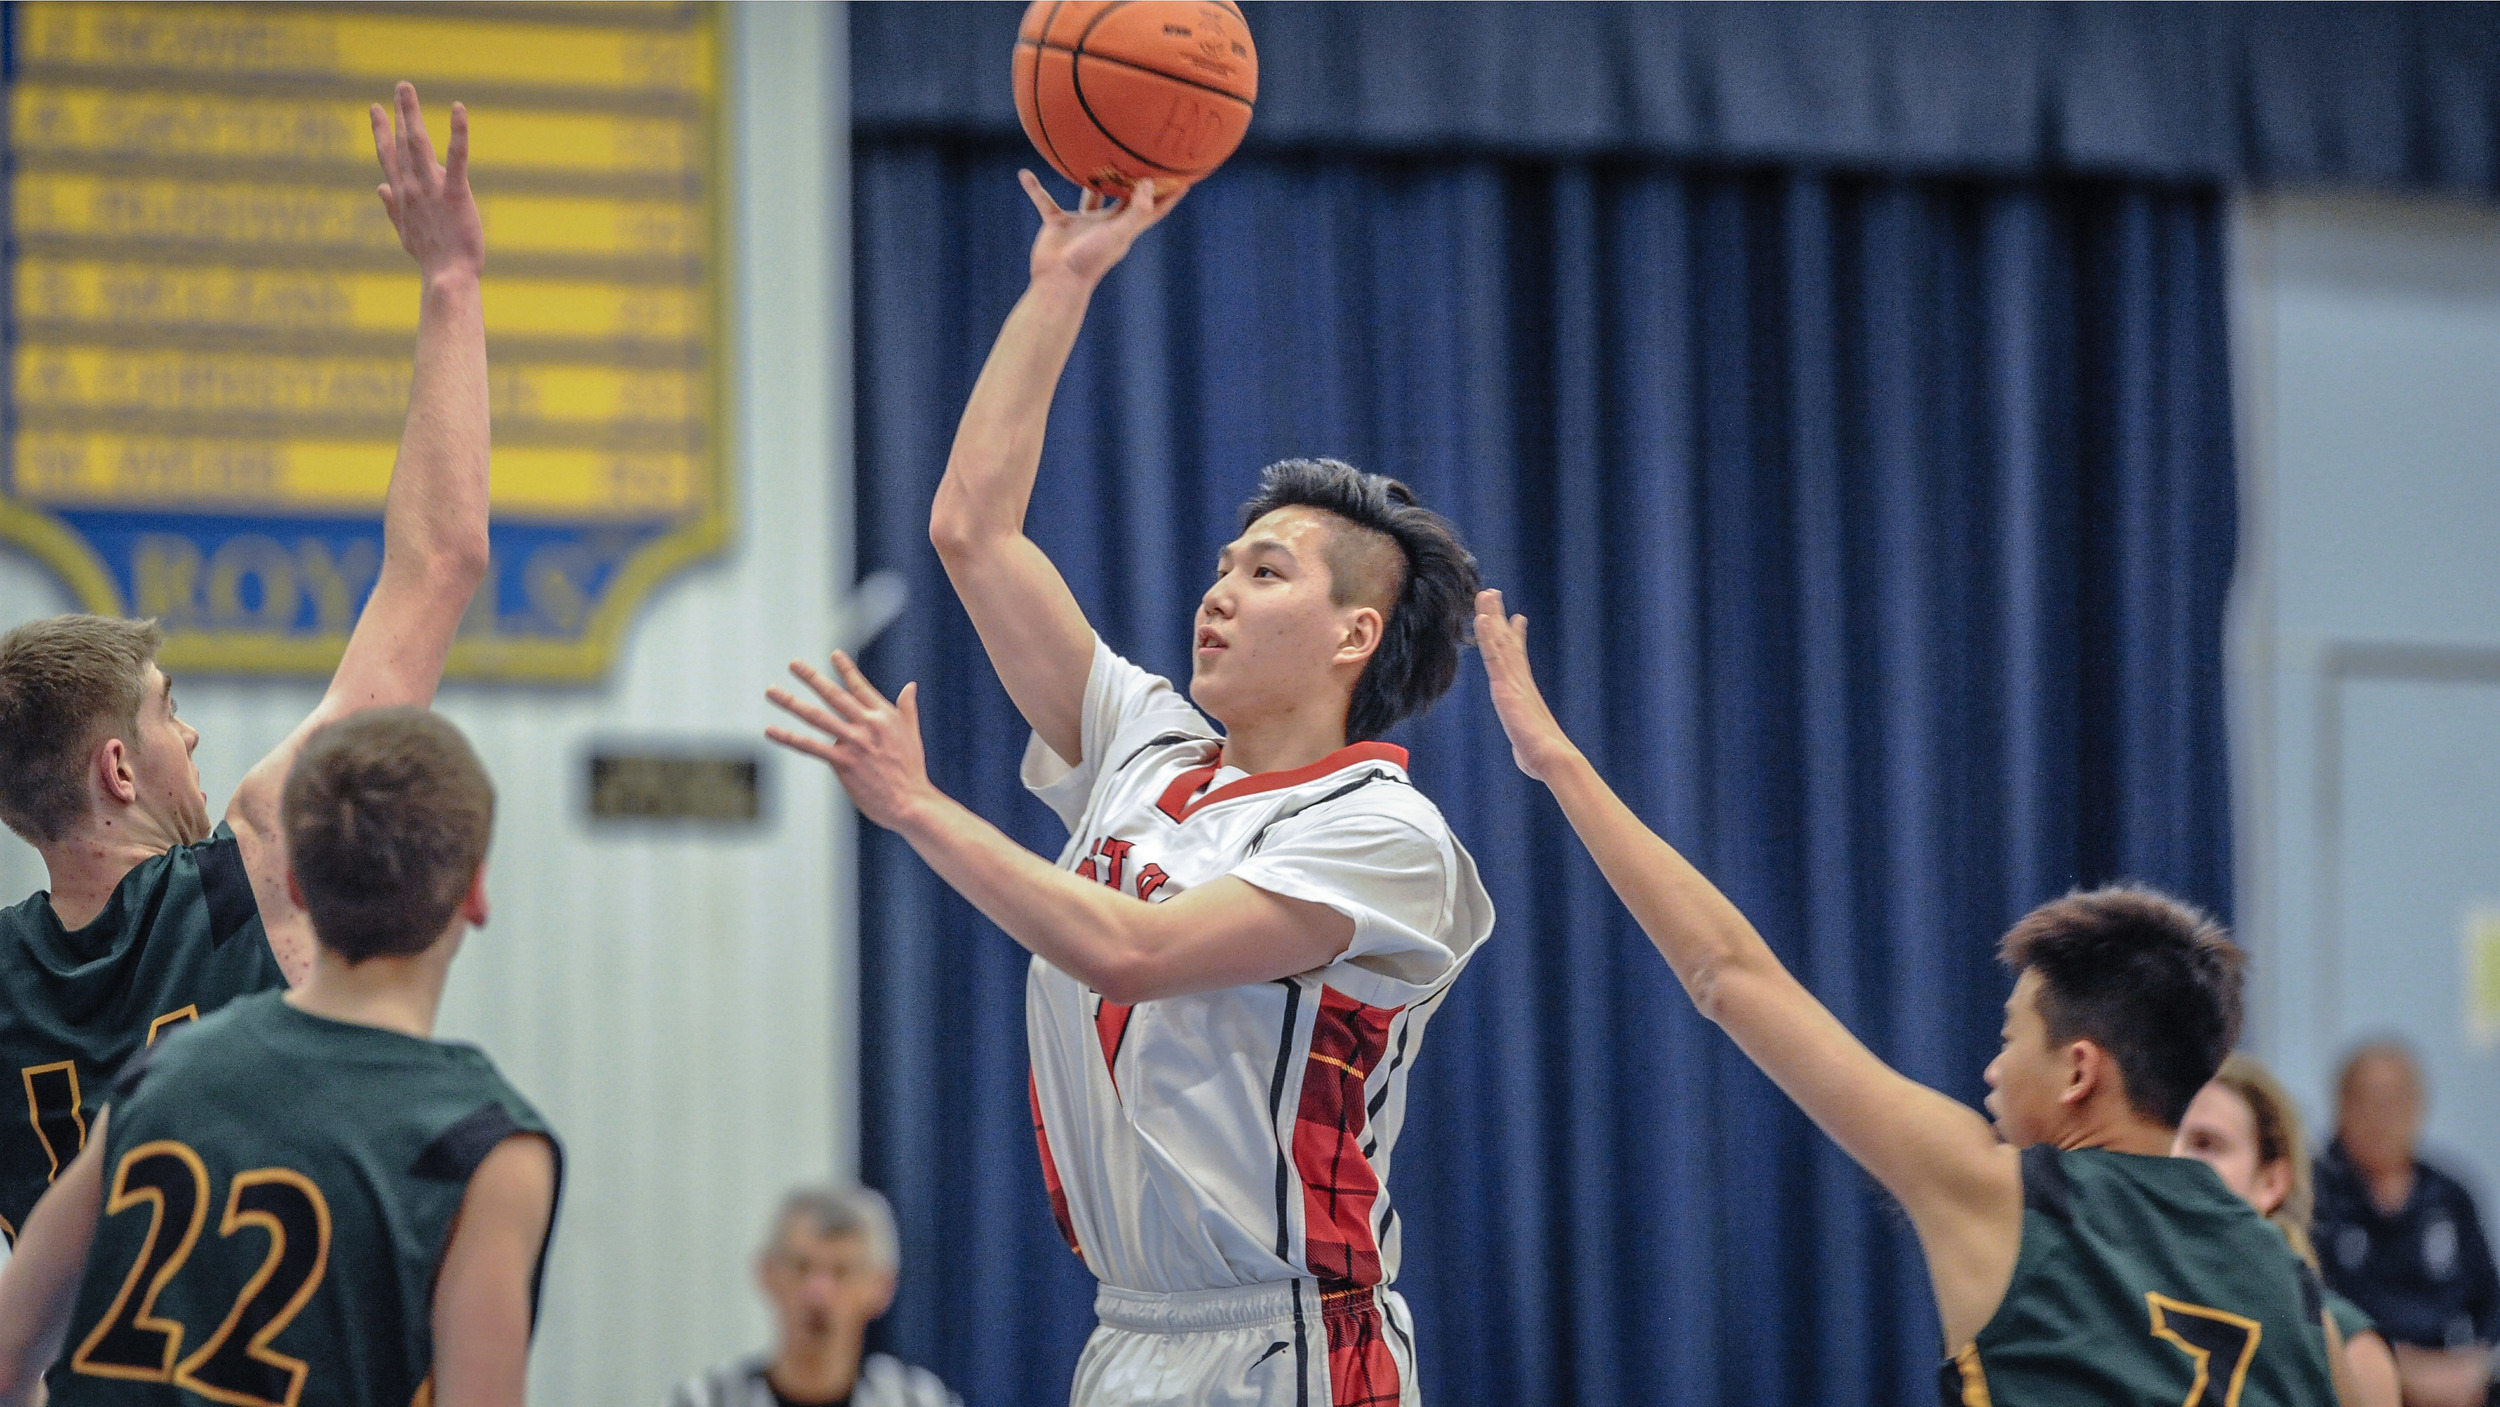 ALEX YOON OF THE WEST VAN HIGHLANDERS ELEVATES AGAINST ARGYLE IN HOWE SOUND PLAYOFF ACTION